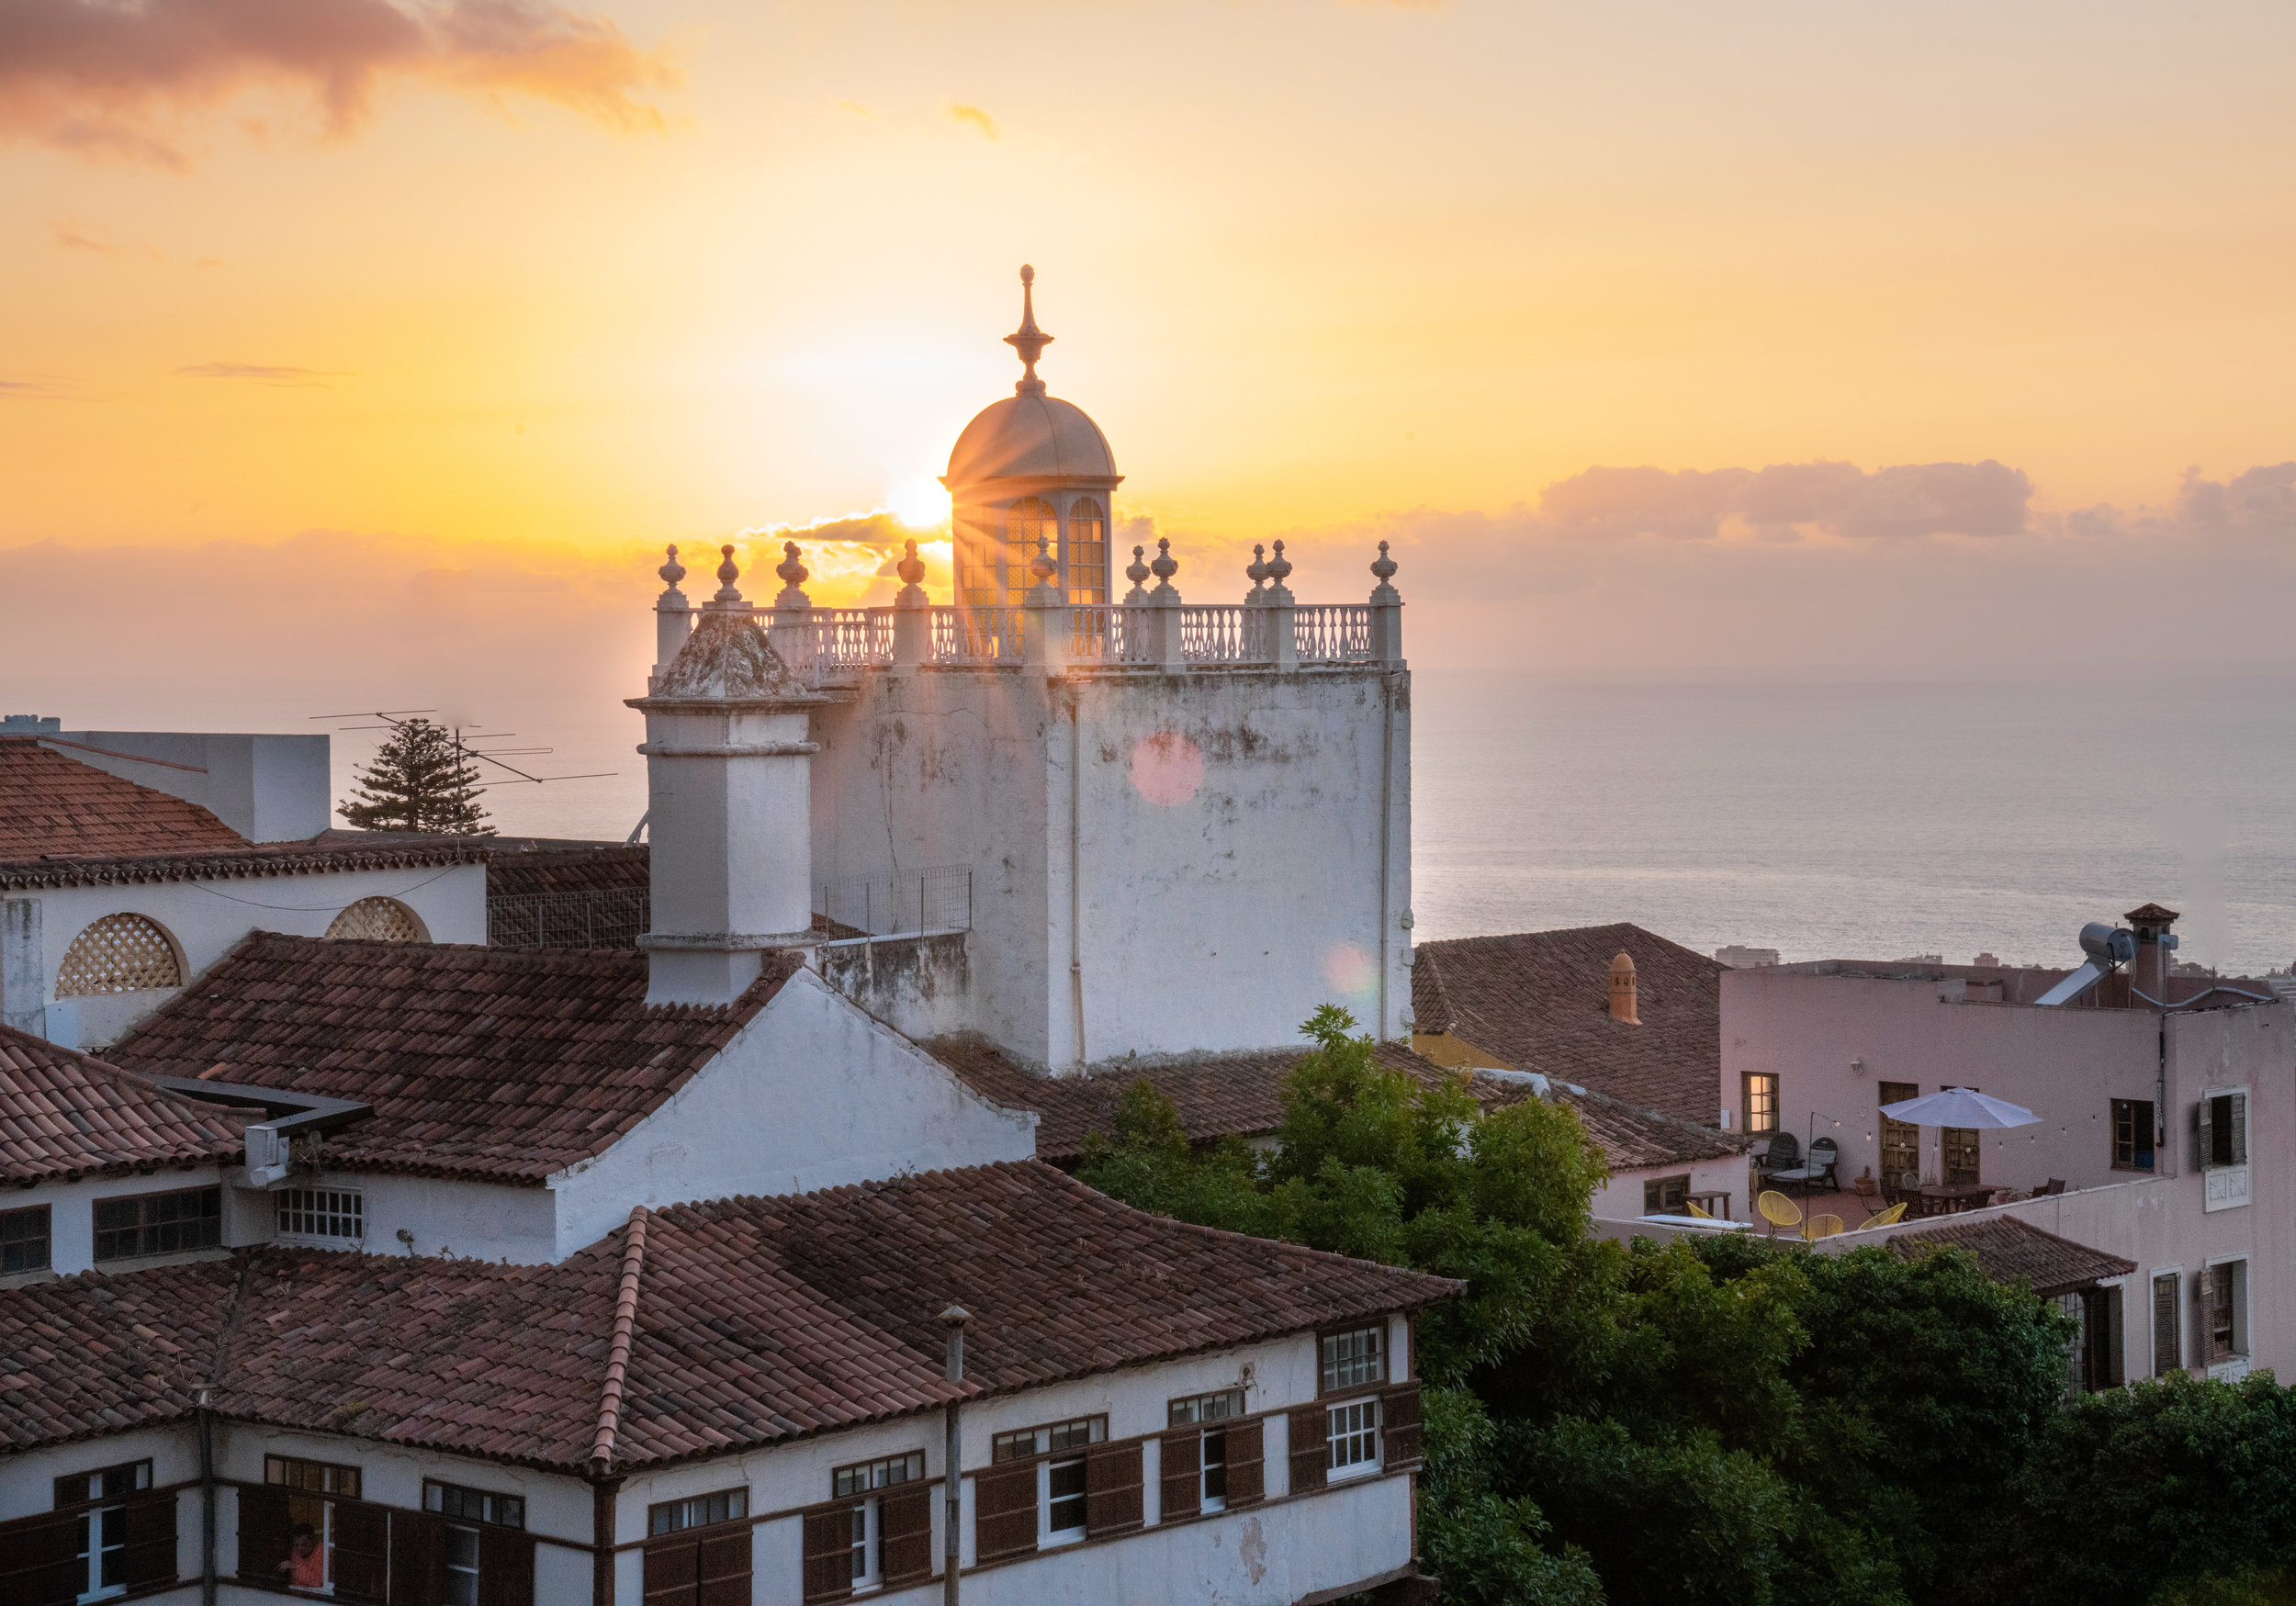 La Orotava & La Laguna - We were in awe of the Spanish Colonial architecture in these two cities!